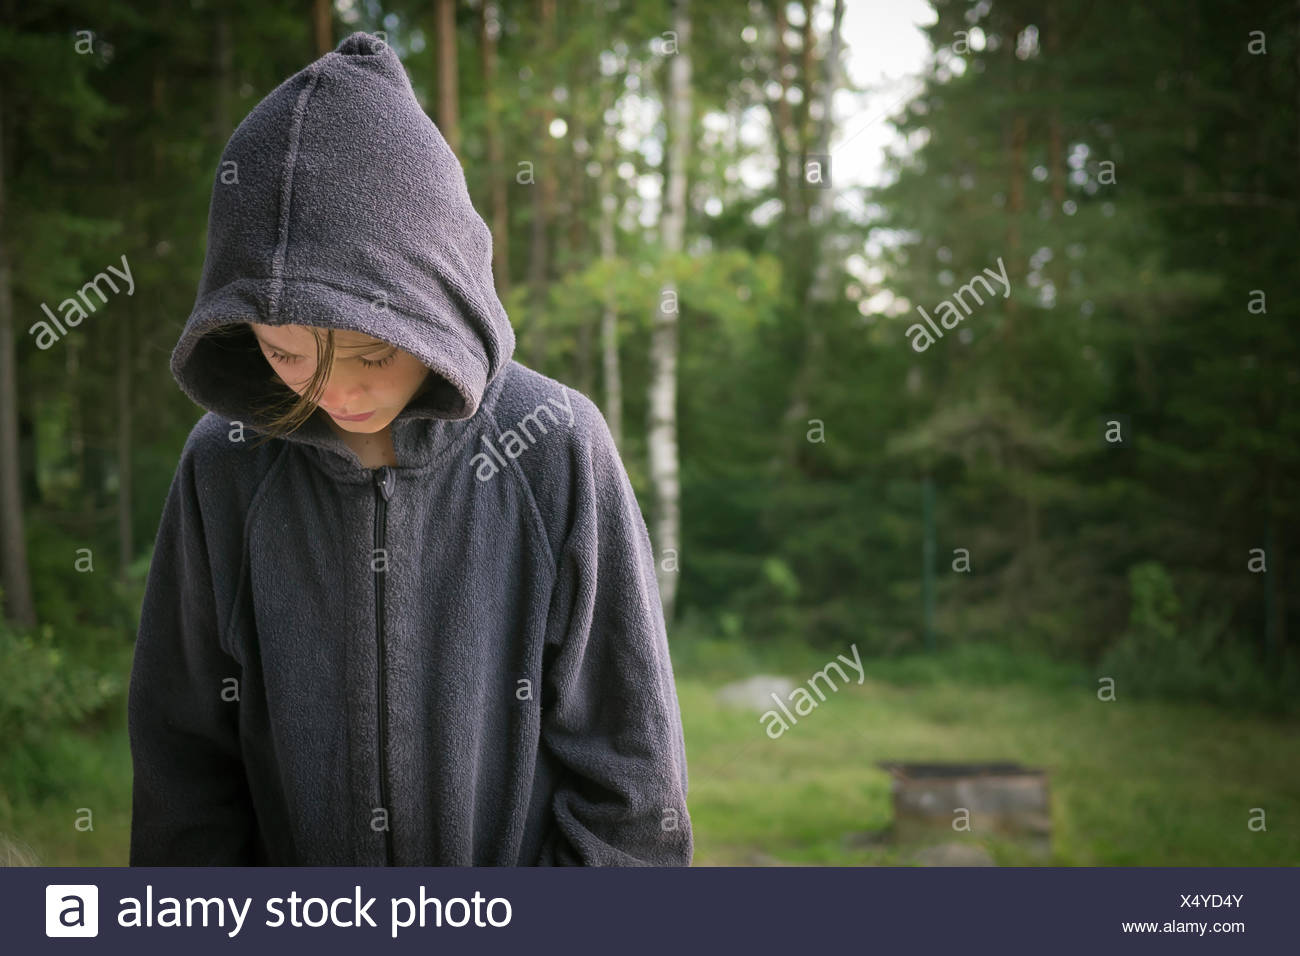 Sweden, Vastergotland, Lerum, Girl in sweatshirt looking at lakeshore - Stock Image